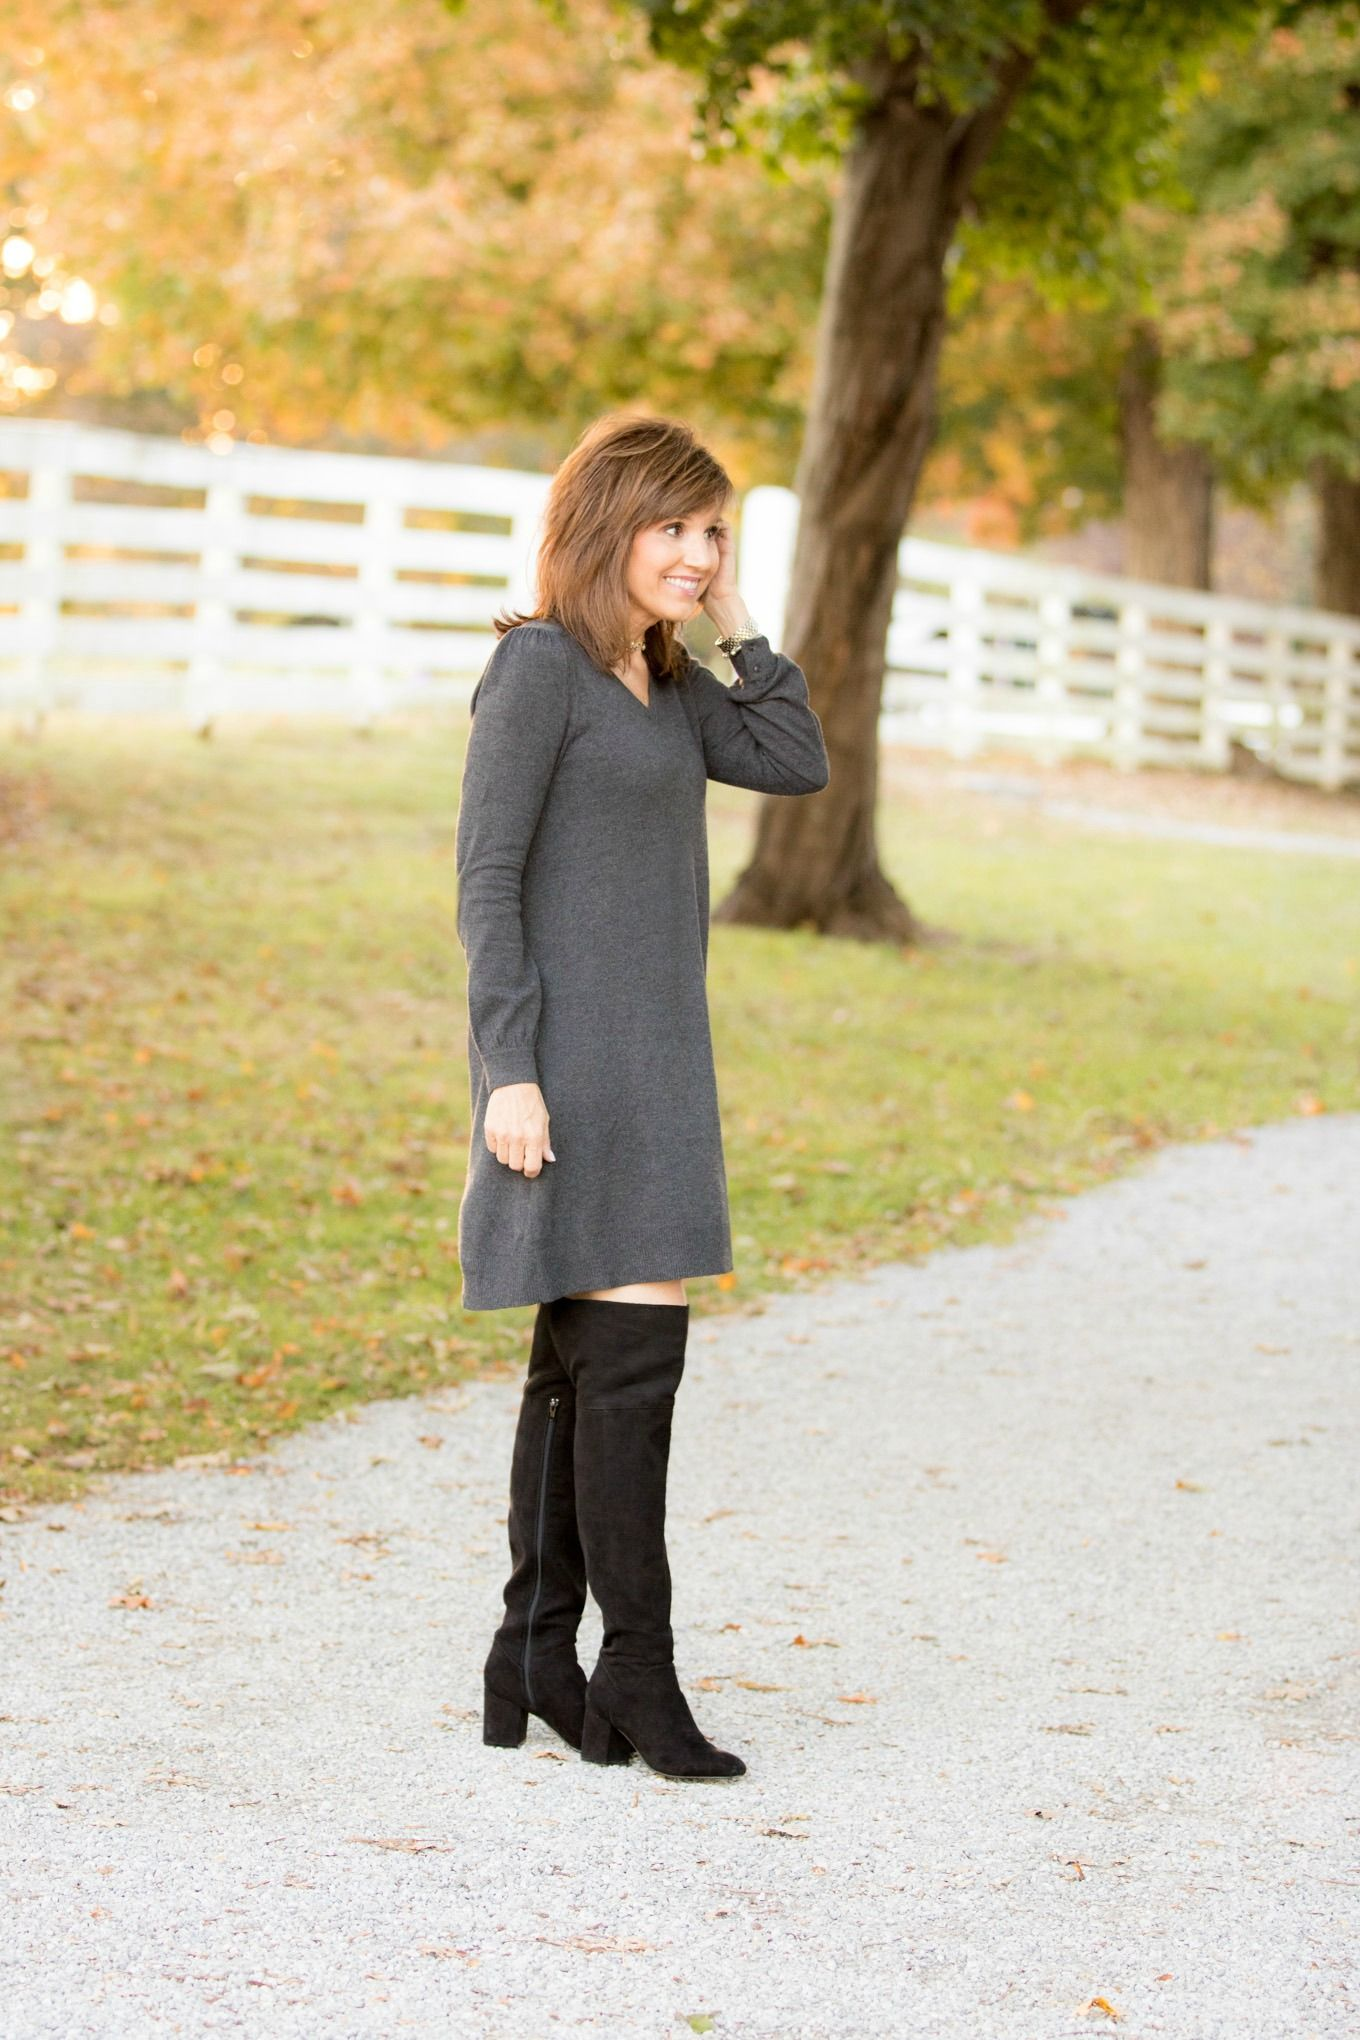 cff272b0adc5 Fashion blogger Cyndi Spivey styling a sweater dress from Loft.